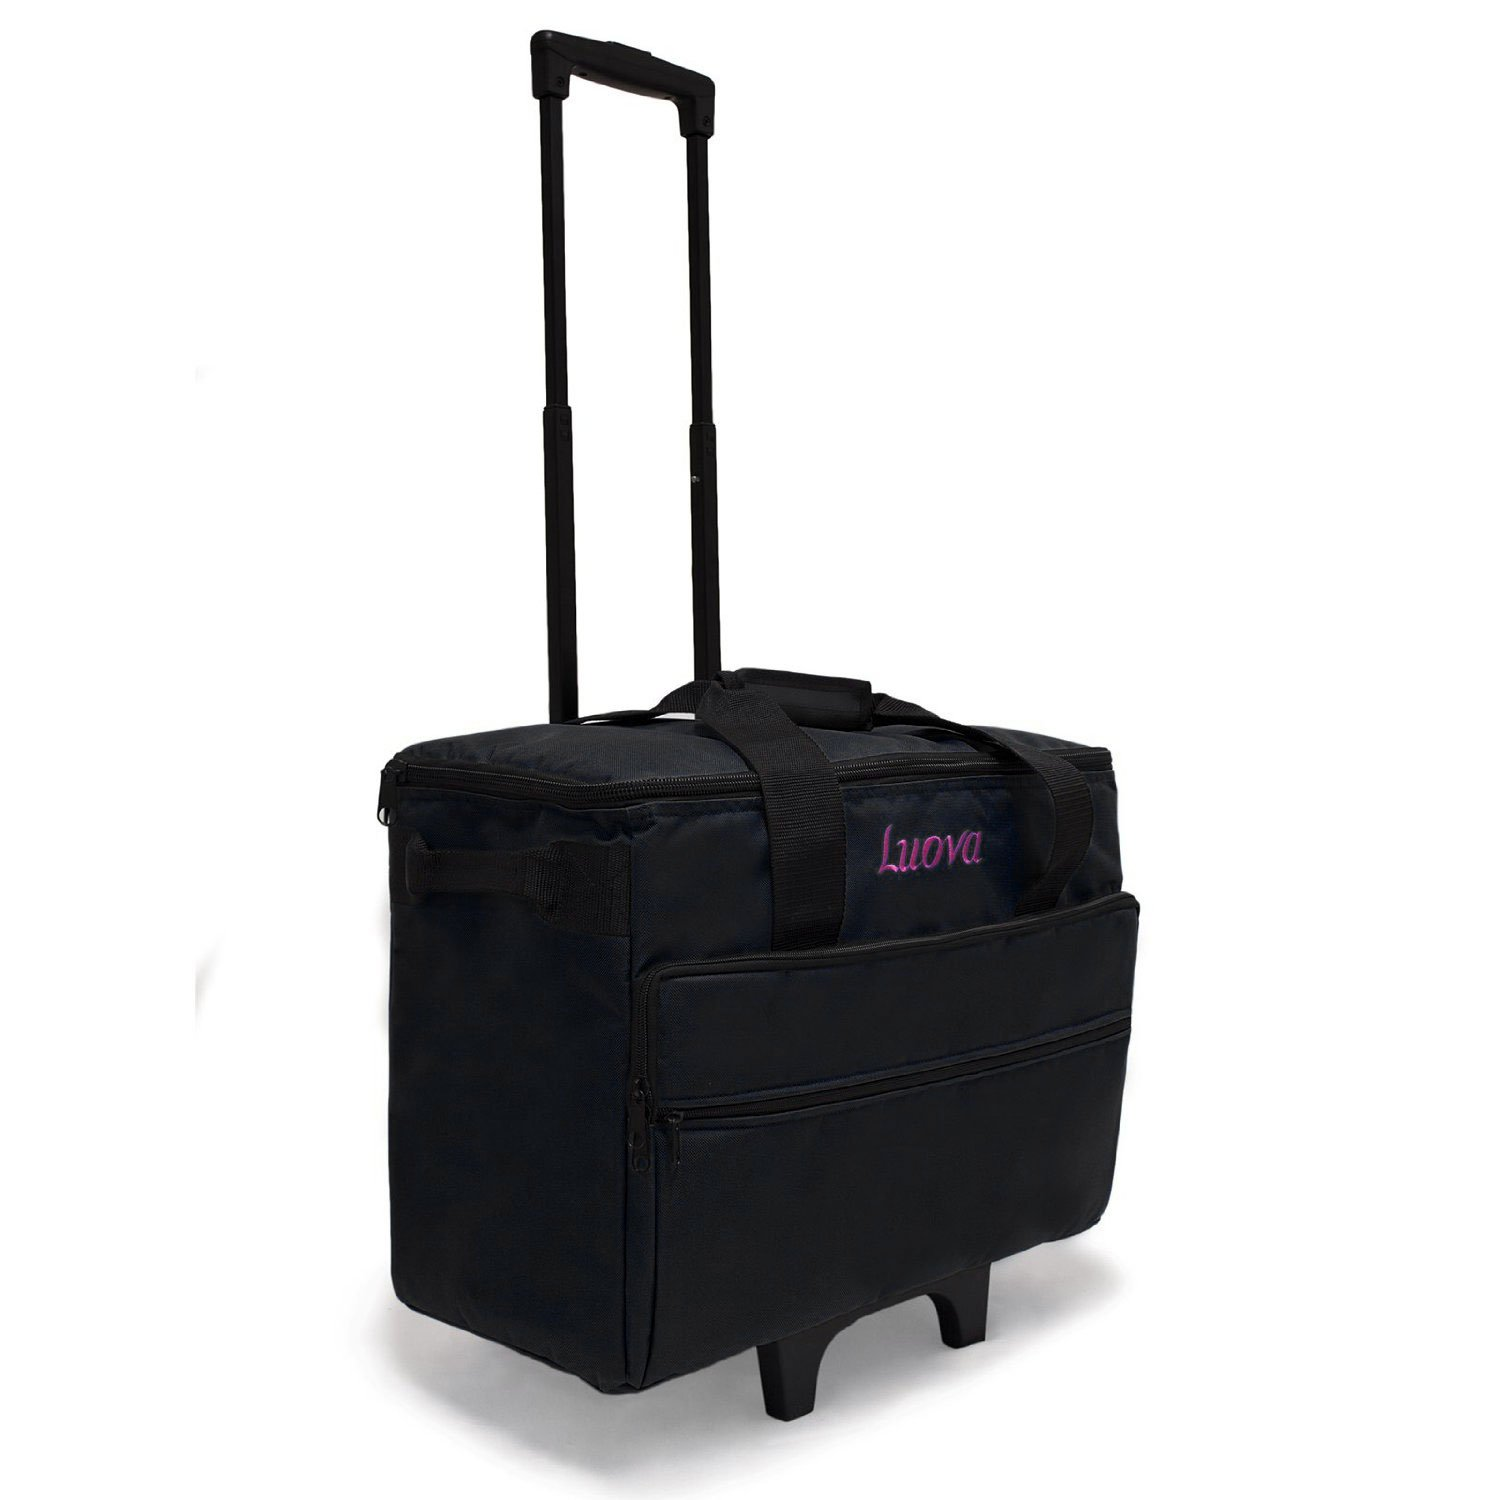 Luova 19 Rolling Sewing Machine Trolley in Black